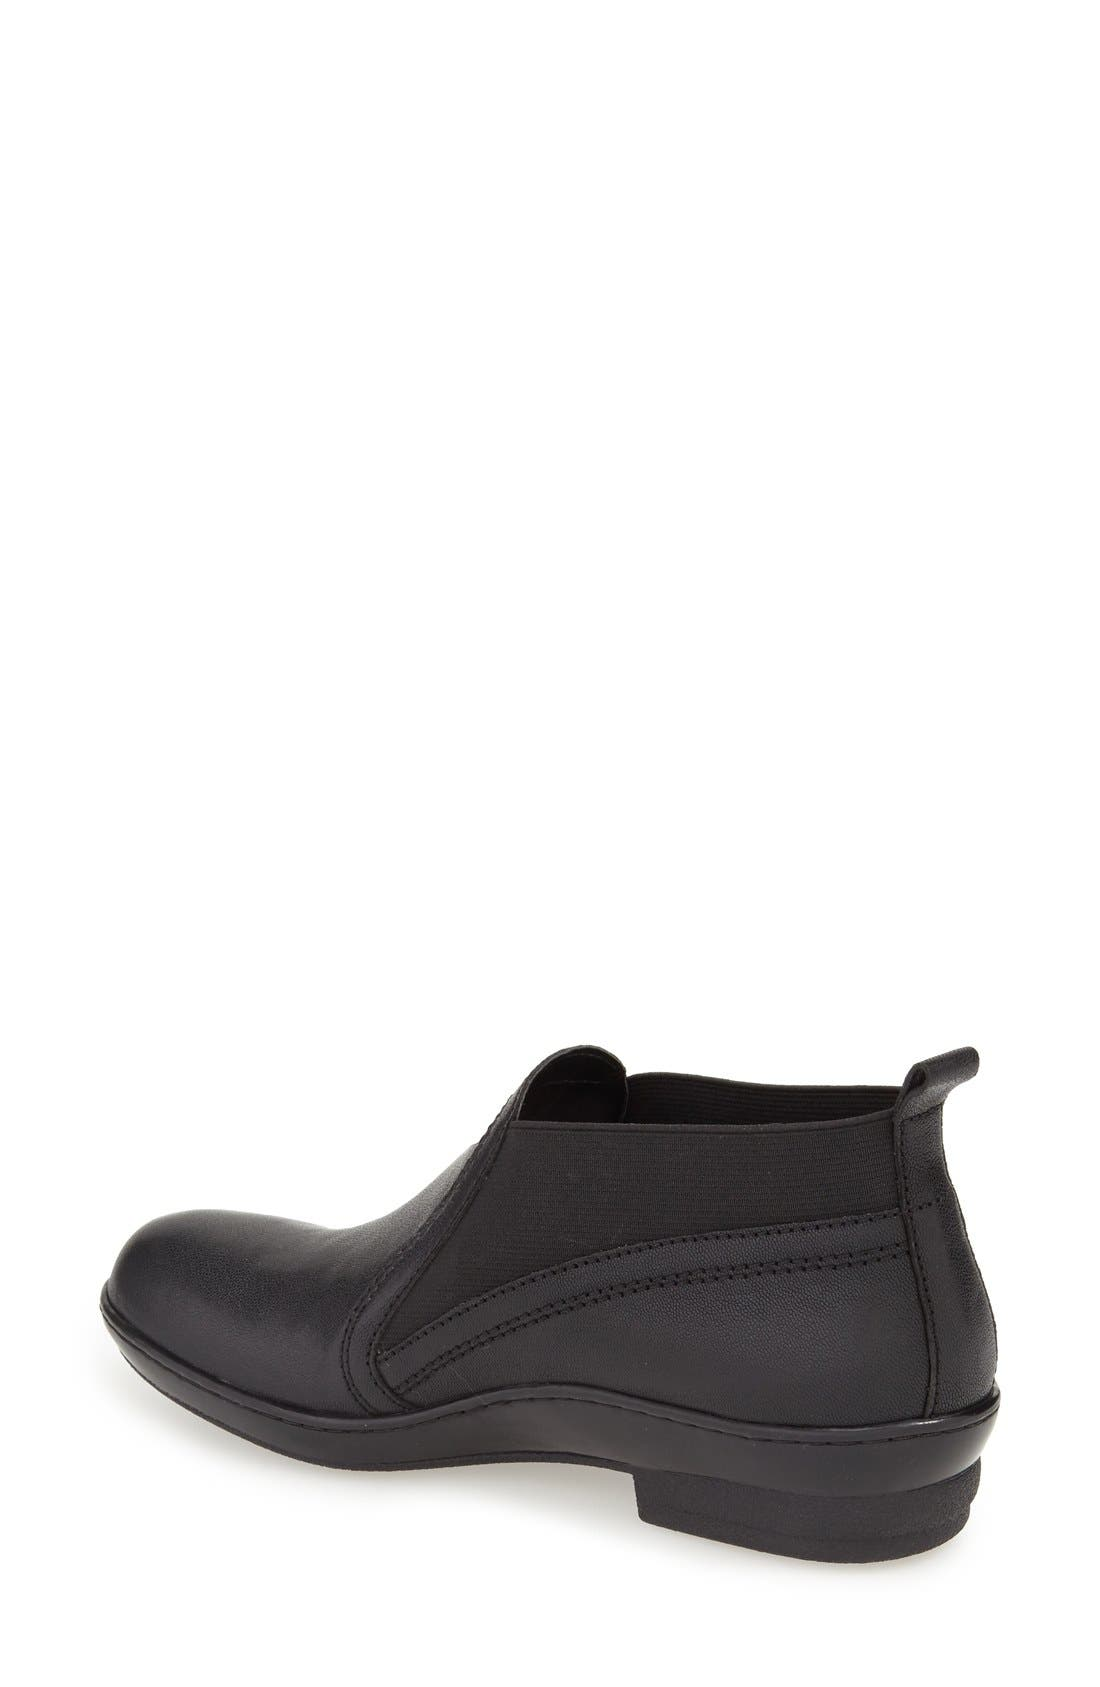 'Naya' Chelsea Boot,                             Alternate thumbnail 2, color,                             Black Leather